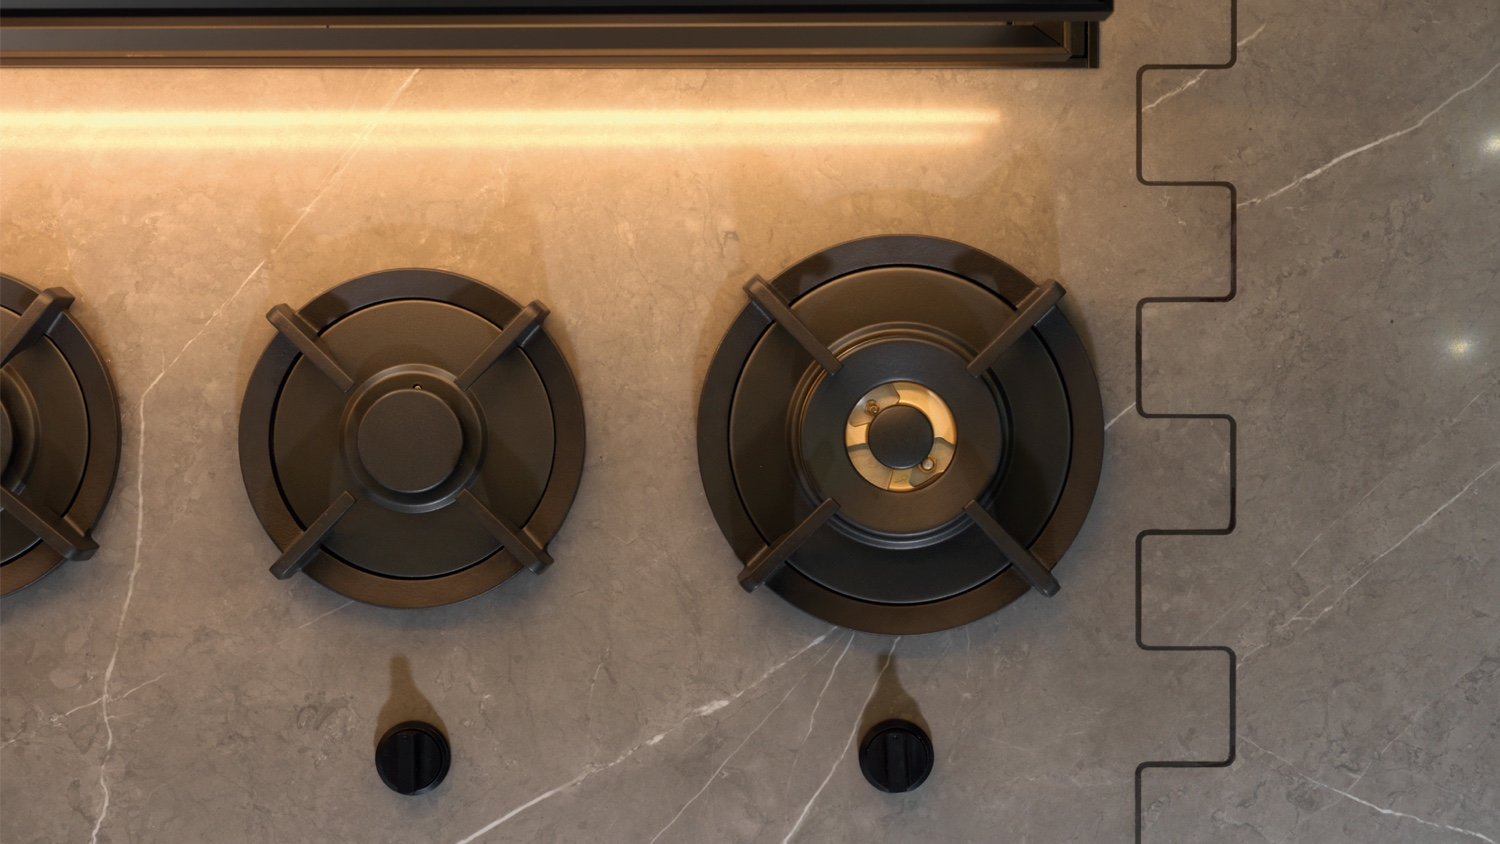 4. Cooking hobs and XLIGHT worktop